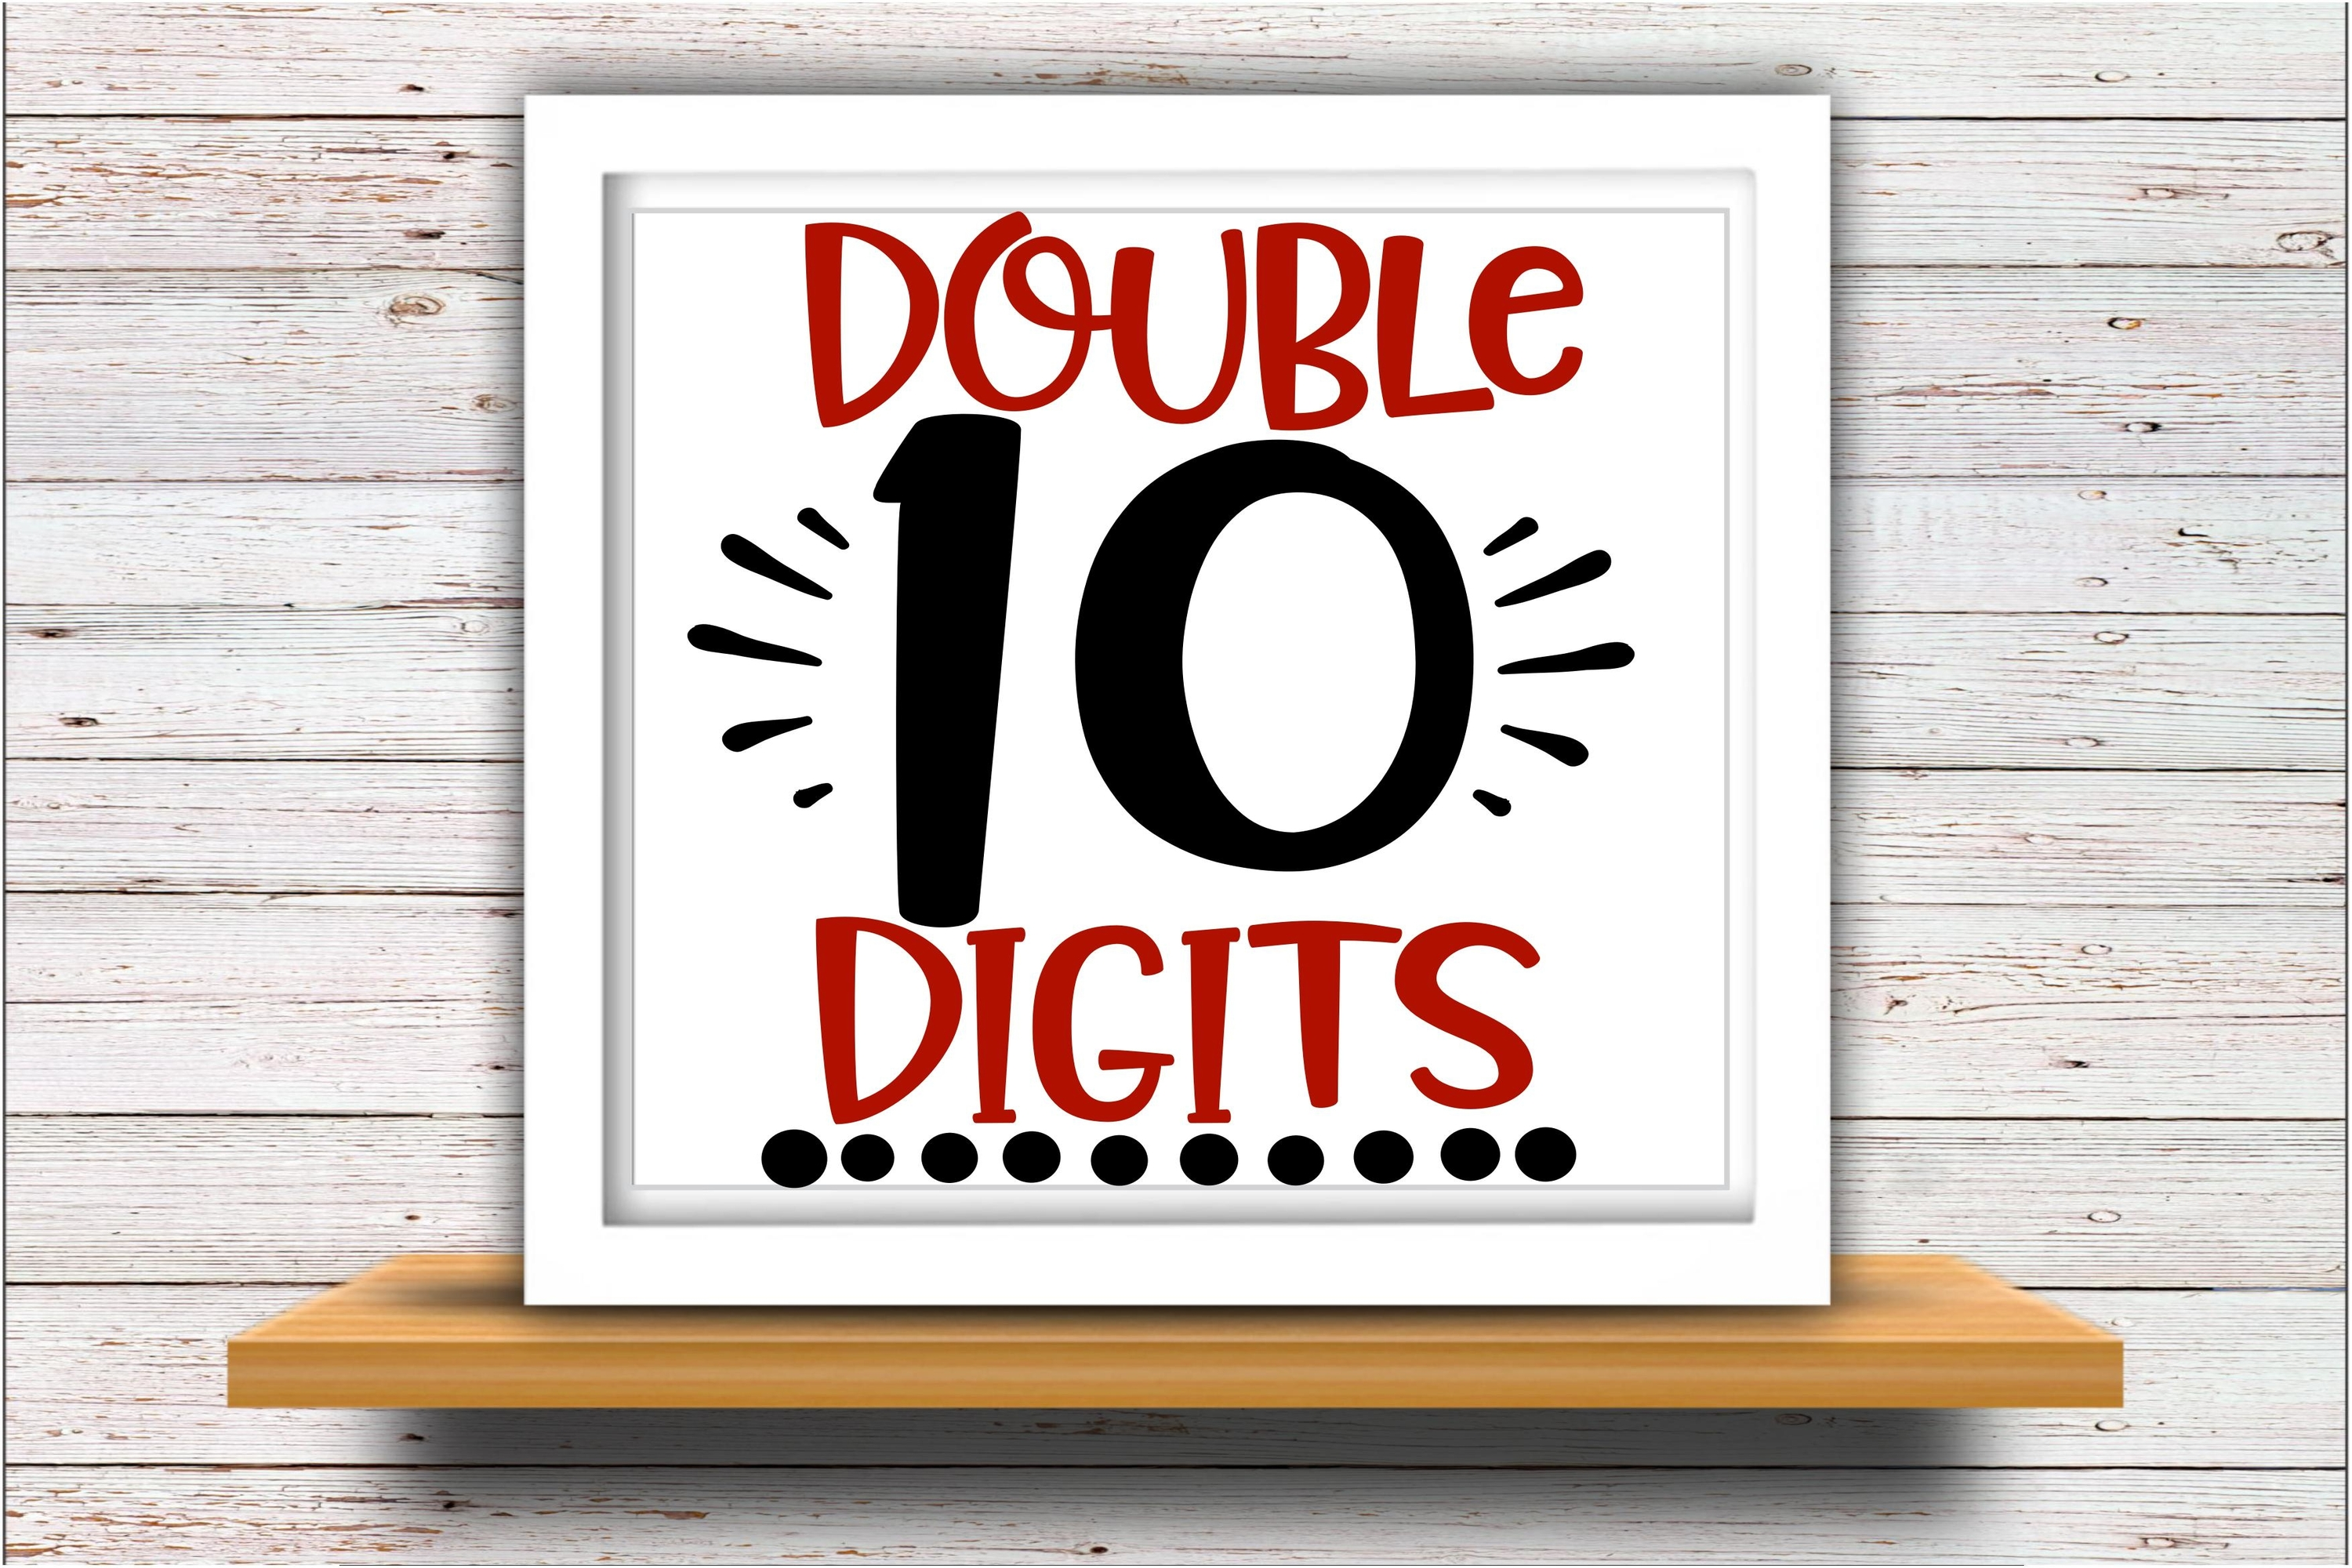 Birthday SVG DXF JPEG Silhouette Cameo Cricut Ten Double dig example image 2